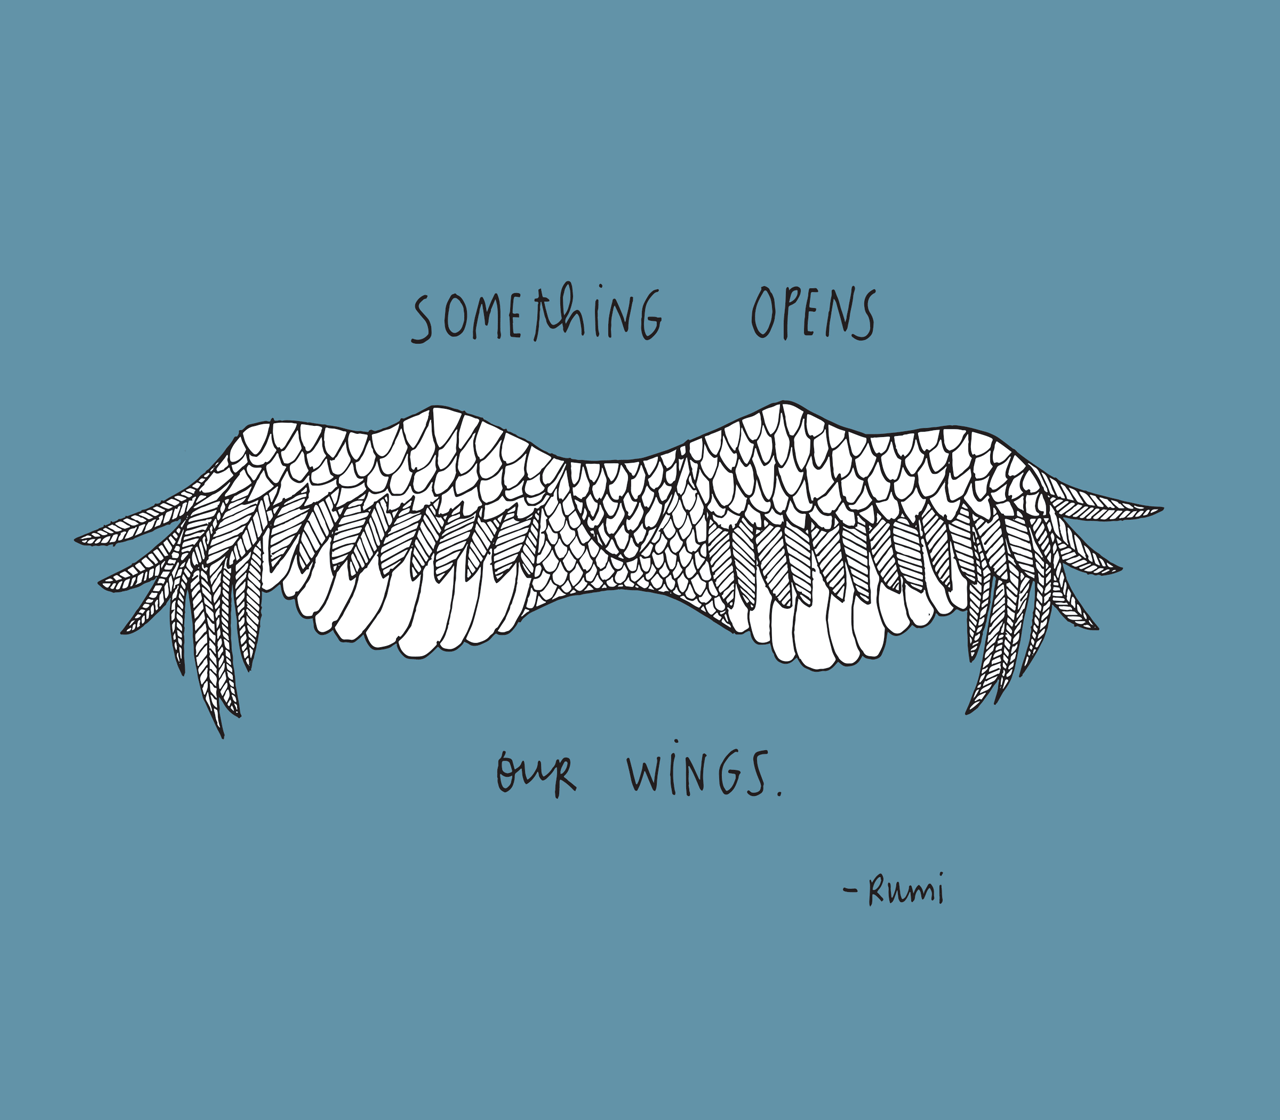 SOMETHING-OPENS-OUR-WINGS-RUMI